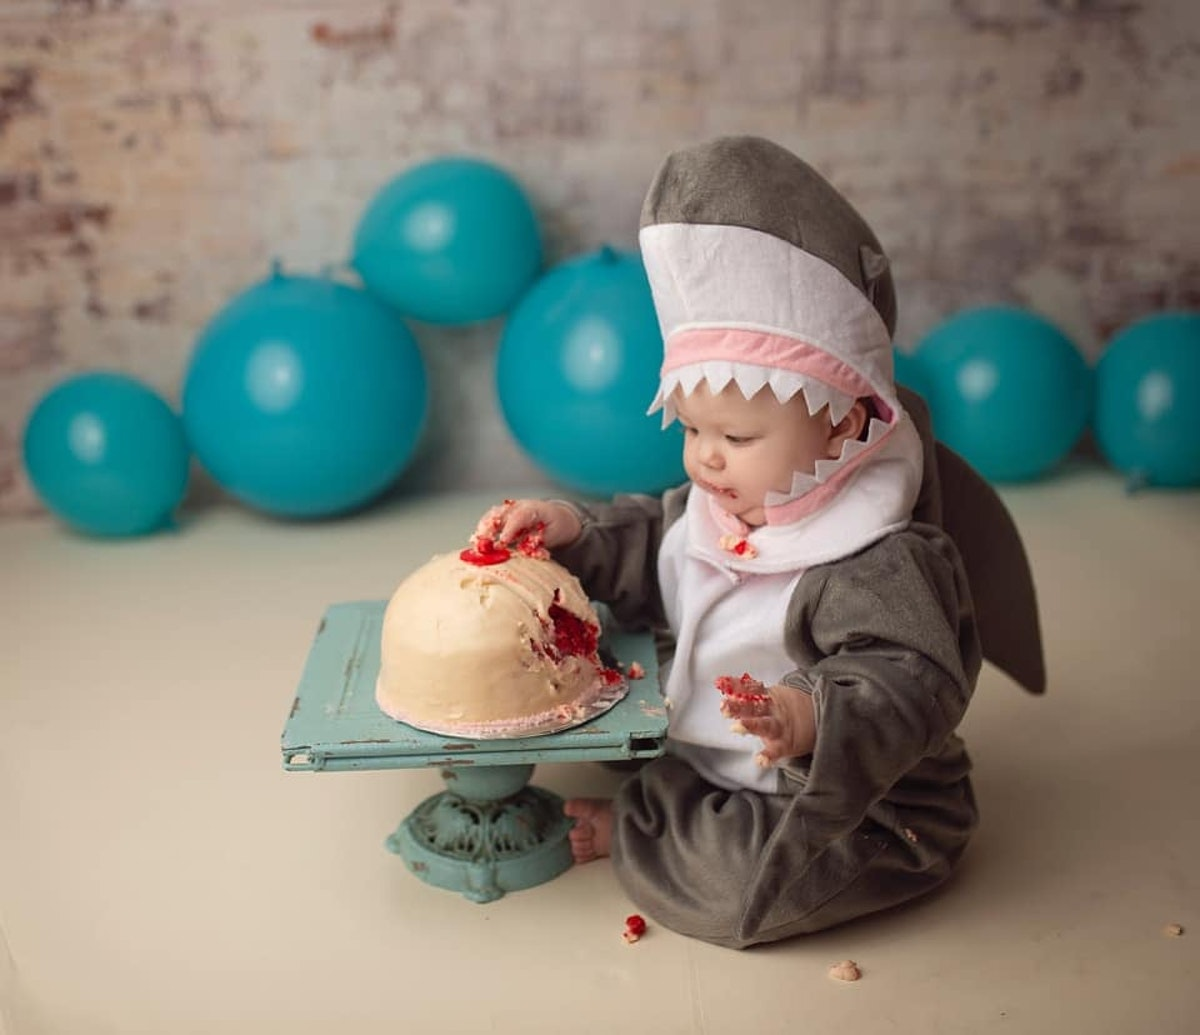 This Baby Shark Cake Smash Is Equal Parts Sweet & Scary For Breastfeeding Moms